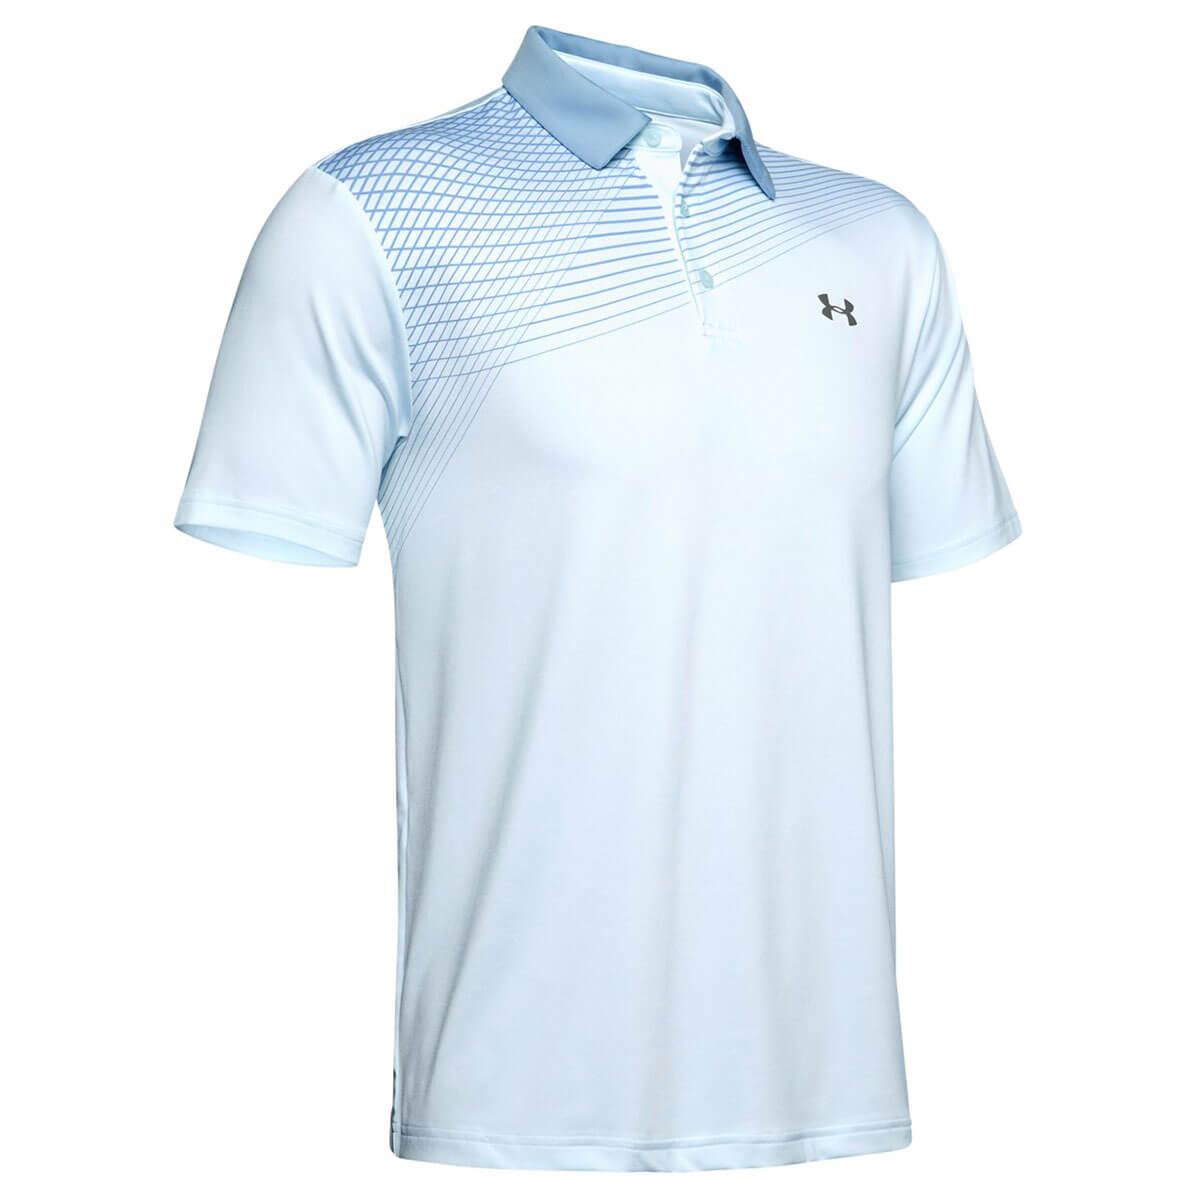 Under-Armour-Mens-2019-Playoff-Polo-2-0-Breathable-Light-Stretch-Polo-Shirt thumbnail 62